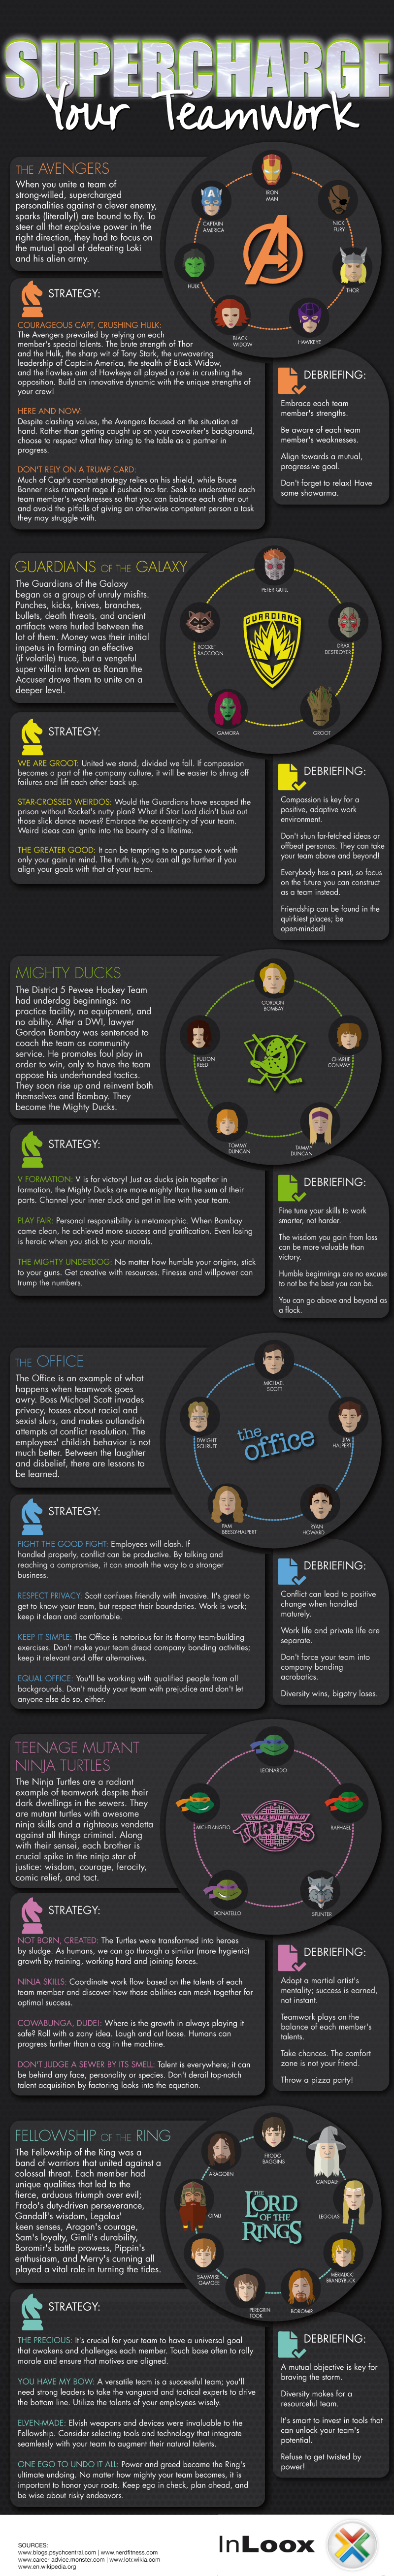 Supercharge Your Teamwork - InLoox.com - Infographic